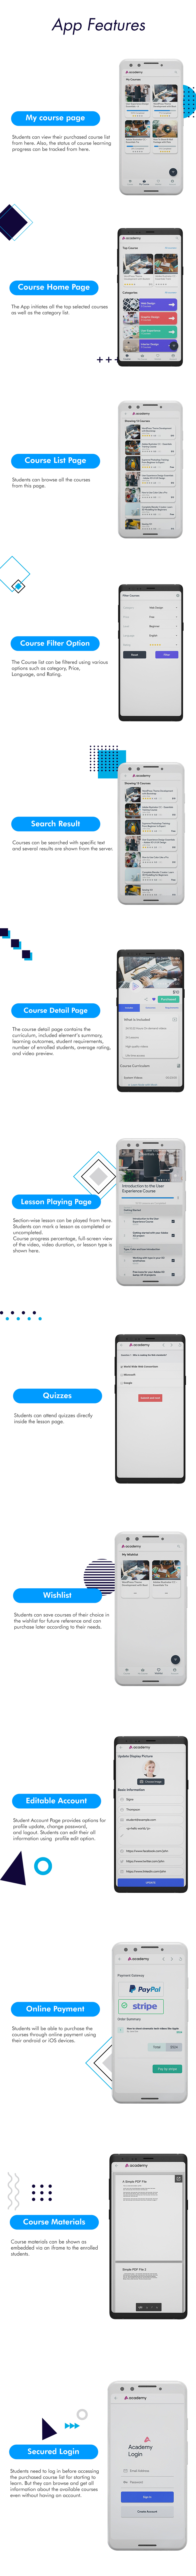 Academy Lms Mobile App - Flutter iOS & Android - 4